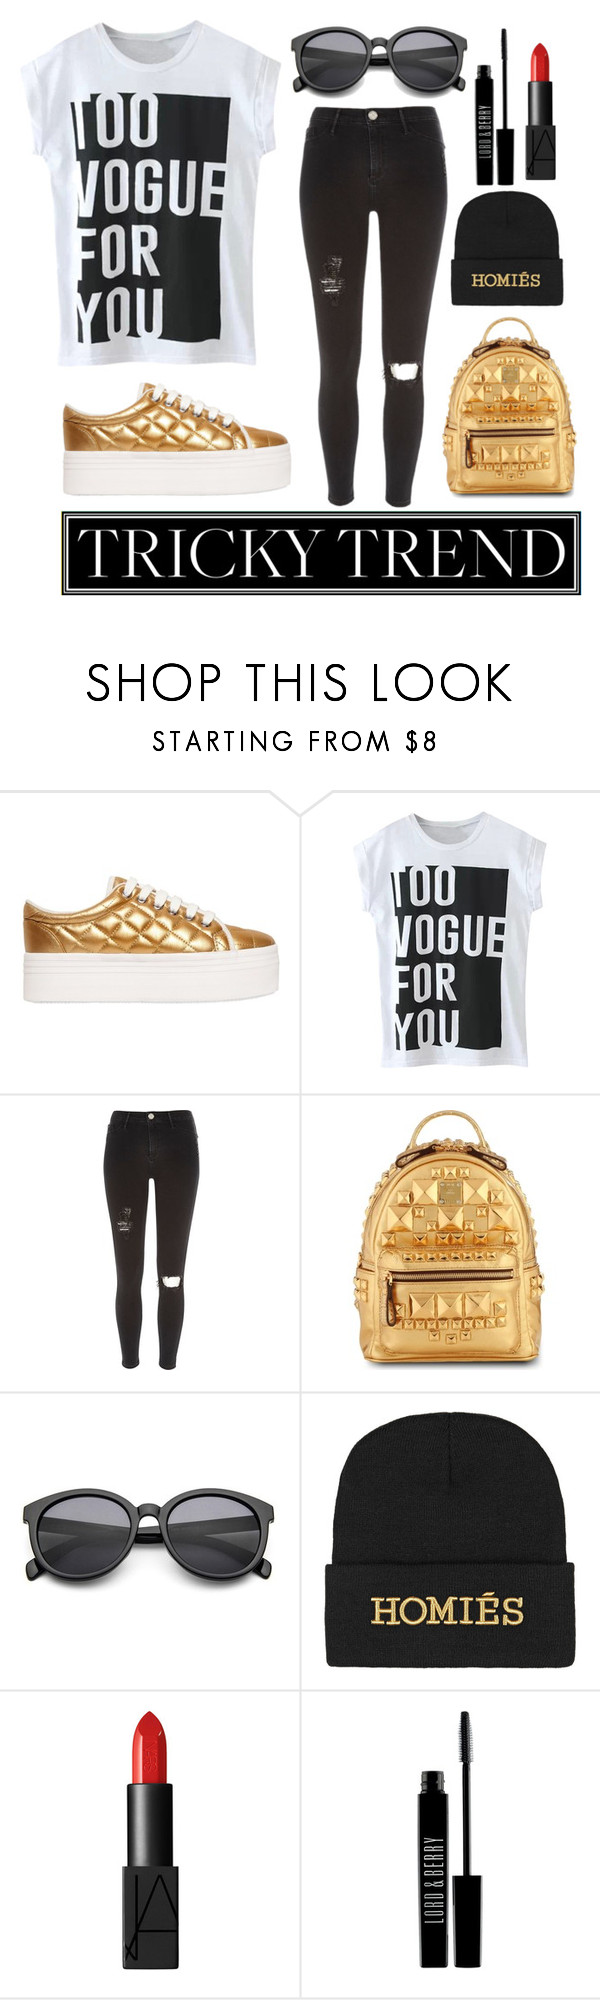 """""""Gold Vogue"""" by ethenknowsfashion ❤ liked on Polyvore featuring Jeffrey Campbell, River Island, MCM, Brian Lichtenberg, NARS Cosmetics, Lord & Berry, TrickyTrend, vogue and platformsneakers"""